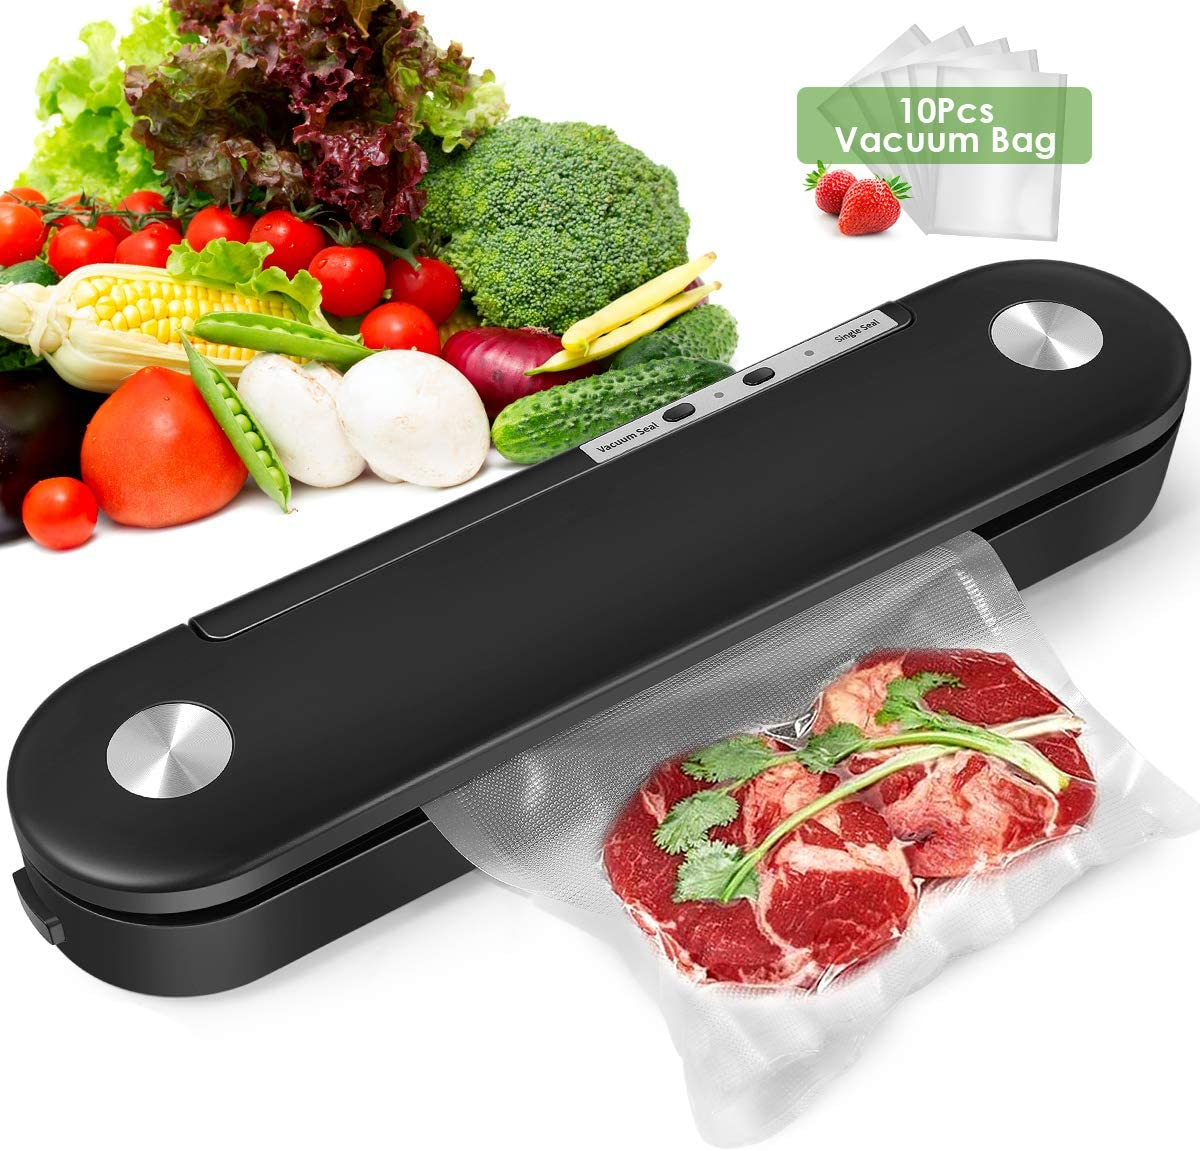 Vacuum Sealer Machine, Automatic Food Sealer Air Sealing System for Food Savers, Led Indicator Lights/Easy to Clean/Two Sealing Modes/Compact Design